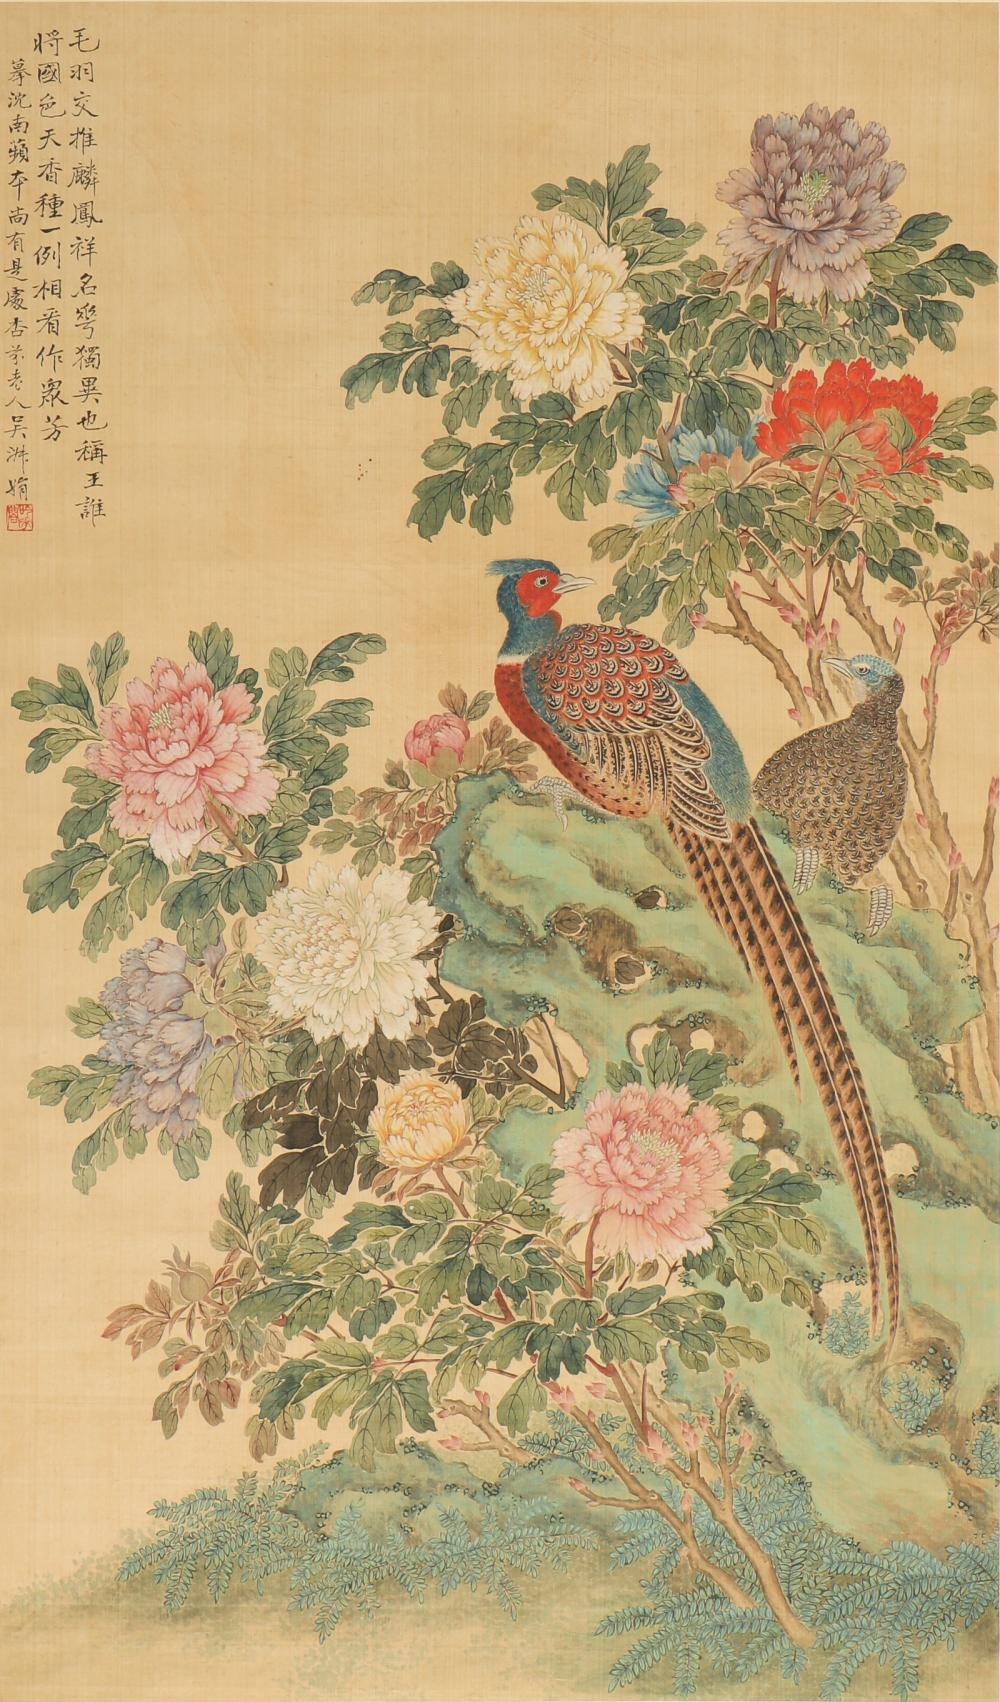 Chinese Painted Silk Scroll of a Pheasant in a Garden